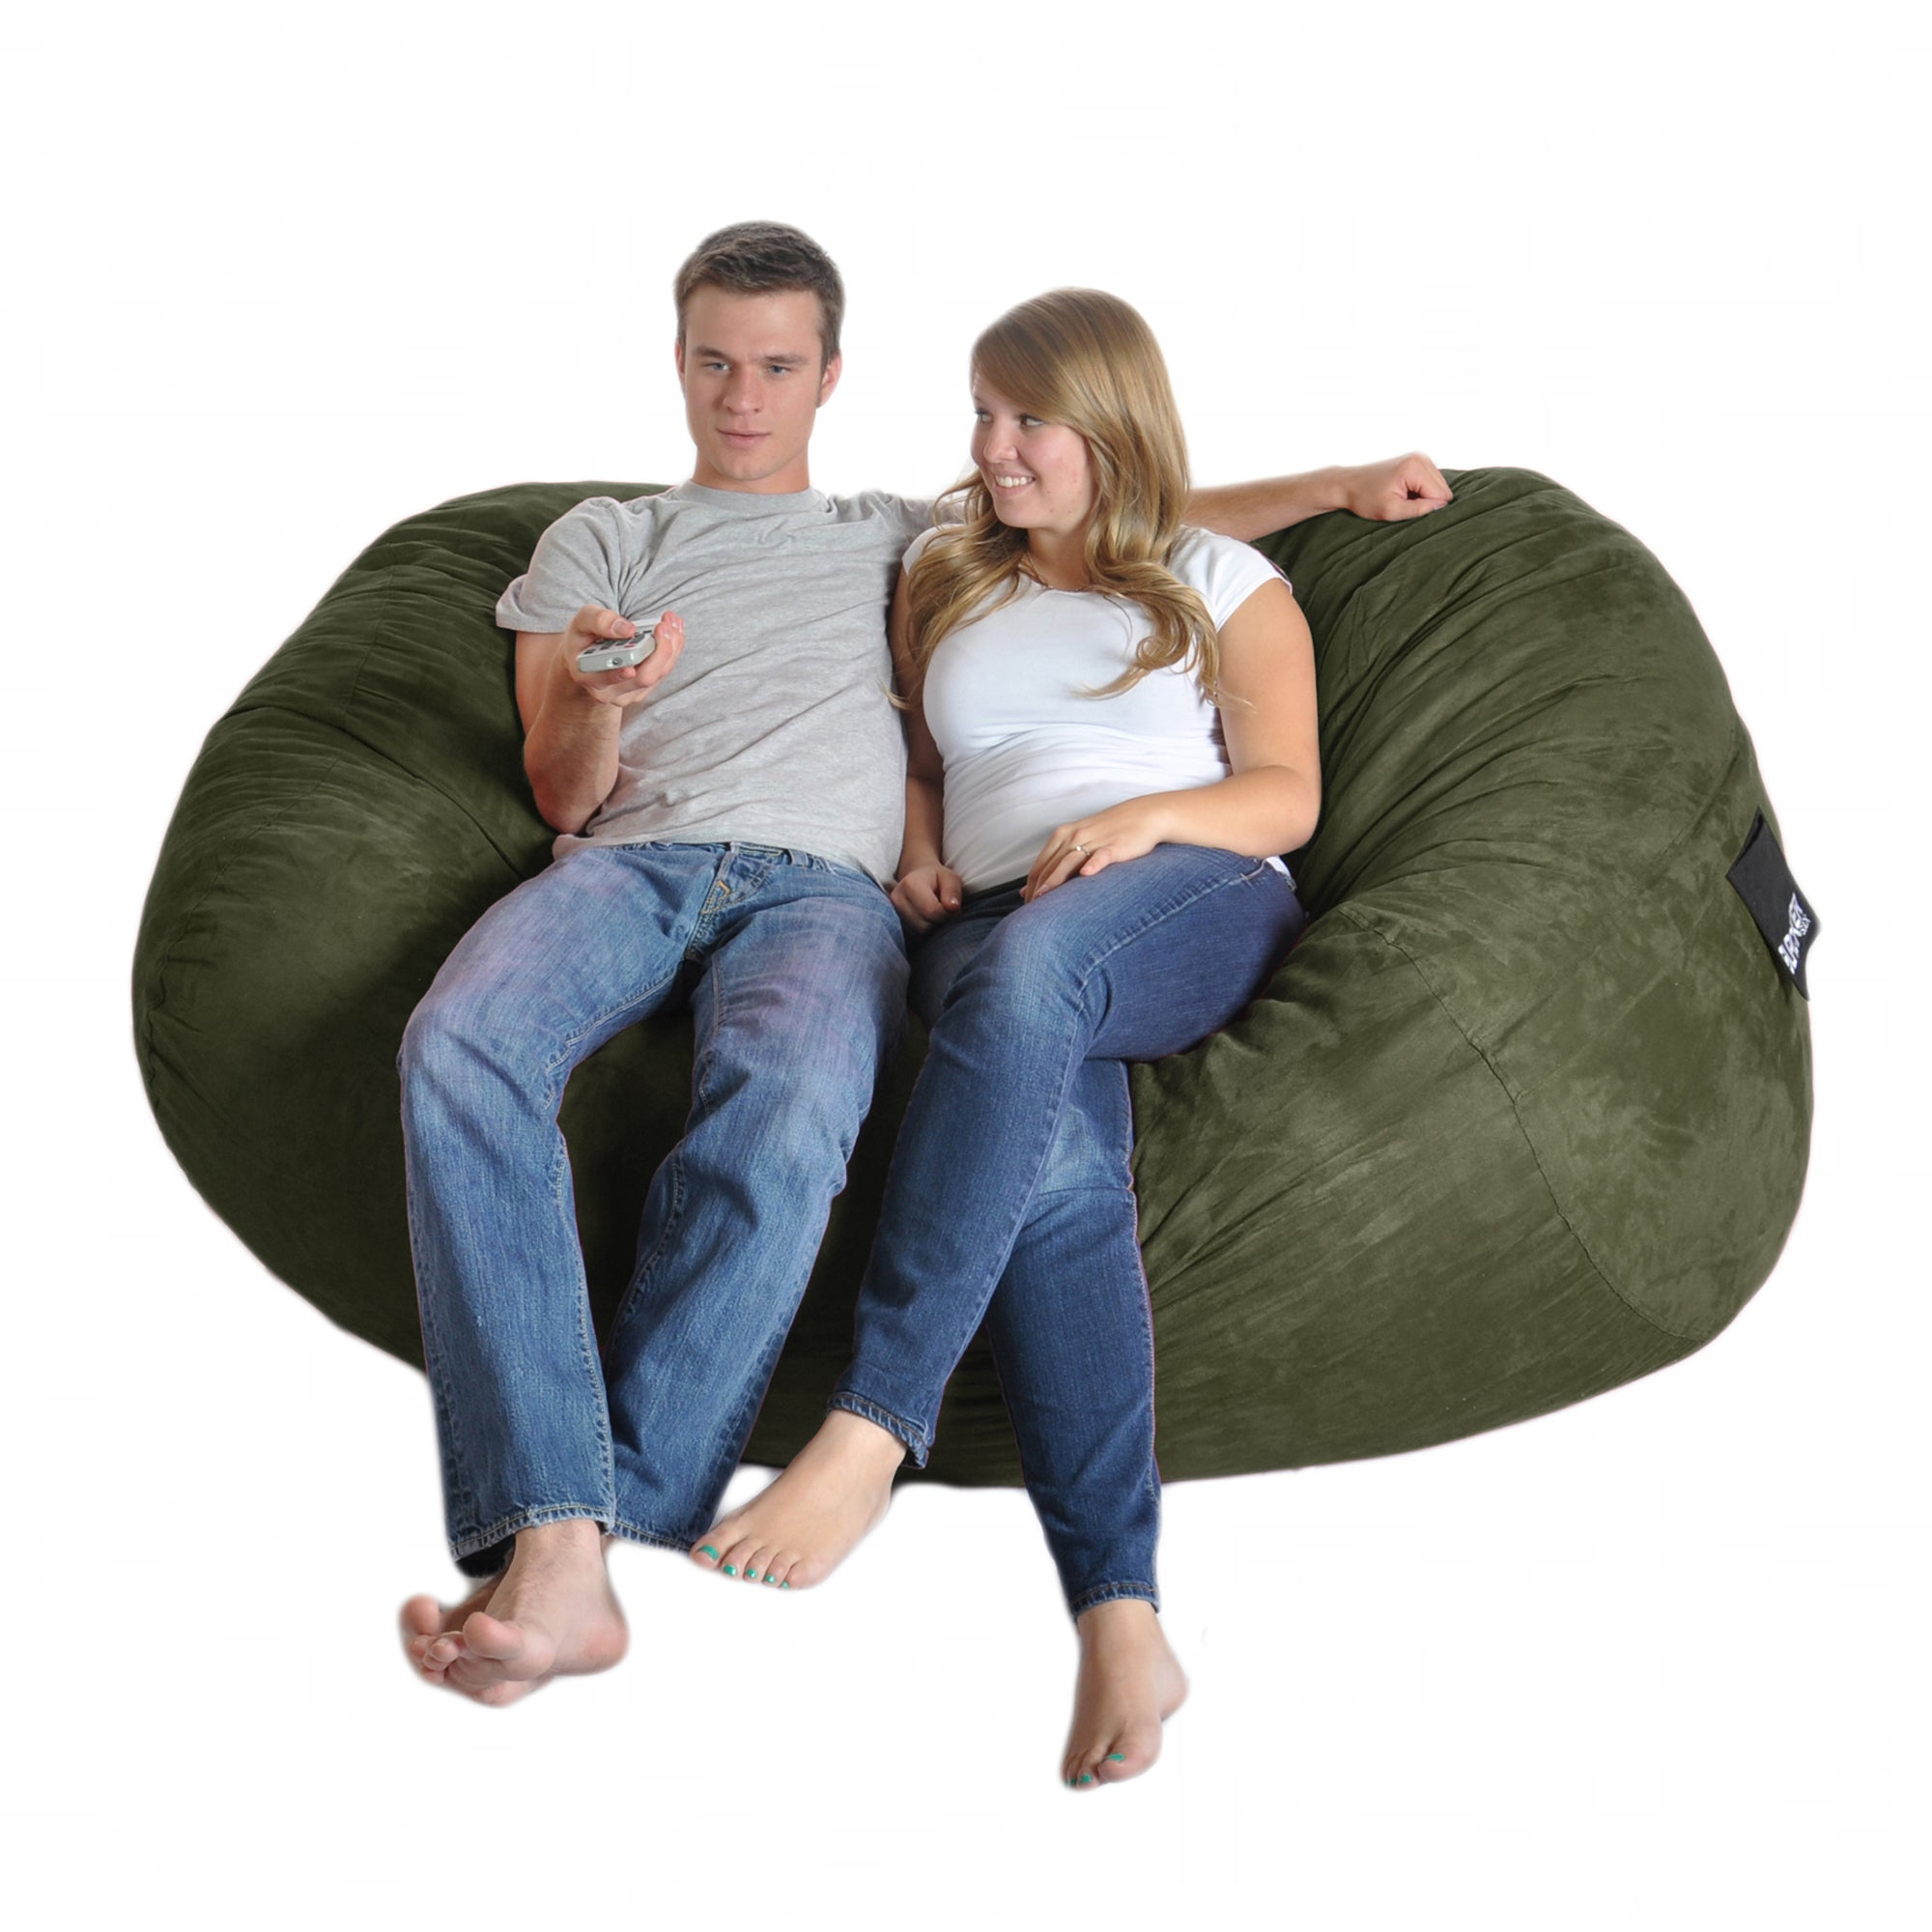 Six-foot Oval Olive Green Microfiber and Foam Bean Bag at Sears.com